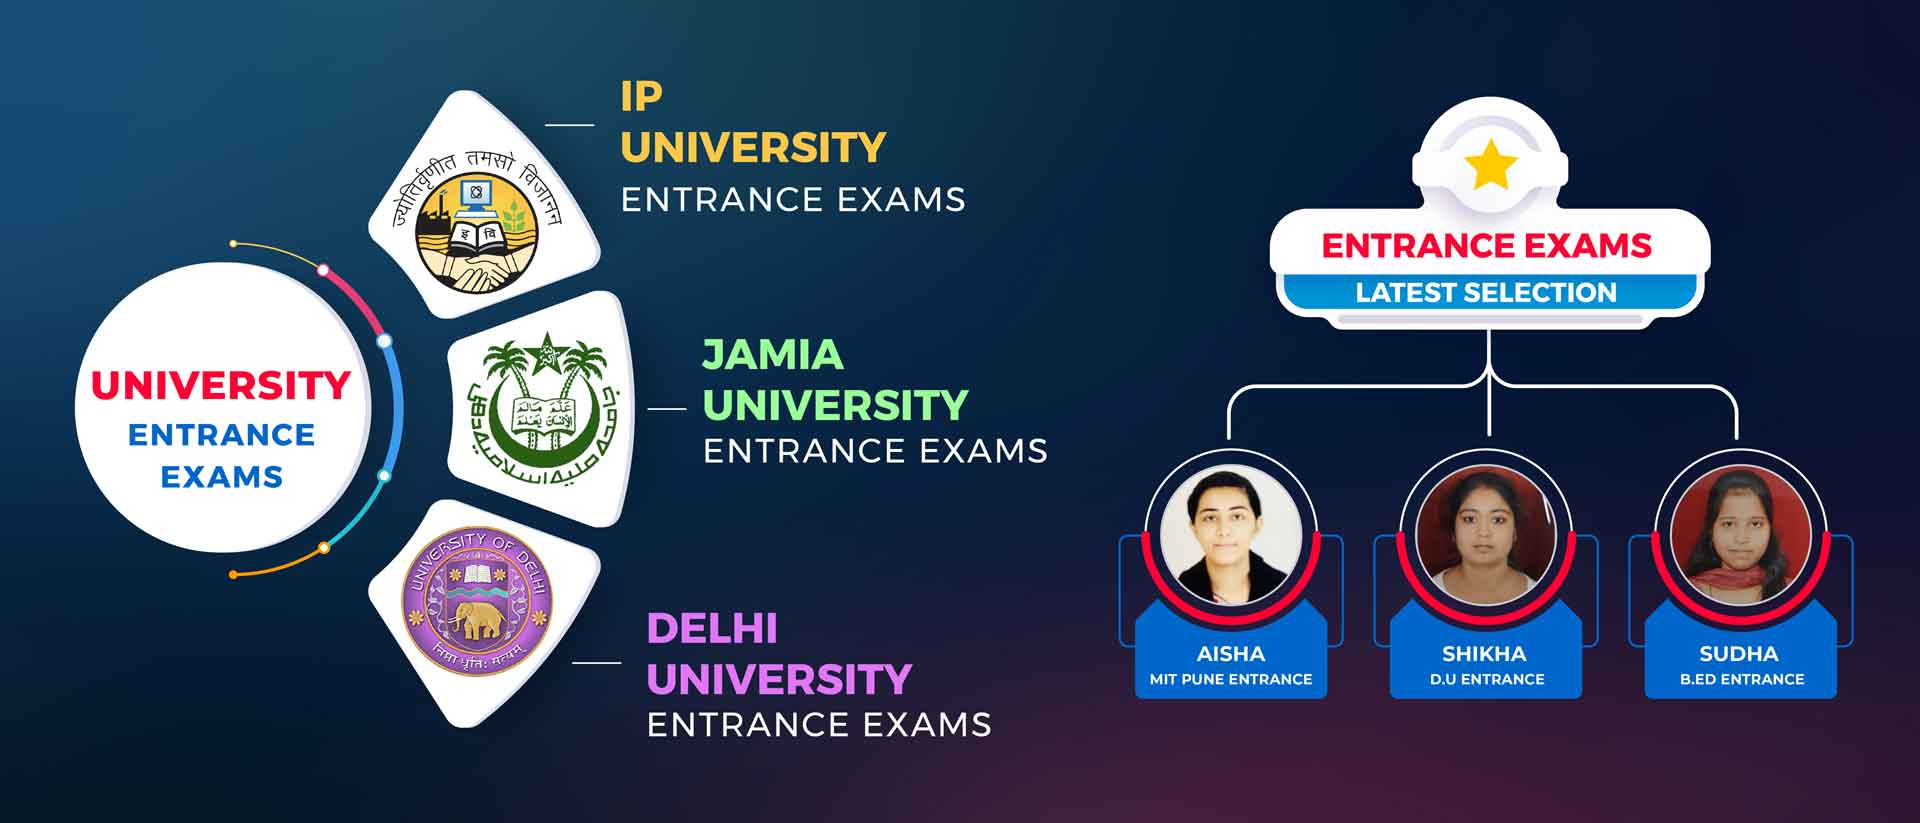 SSC COACHING IN ASHRAM | SSC COACHING IN SOUTH EX | SSC COACHING IN LAJPAT NAGAR | SSC COACHING IN SARITA VIHAR | SSC COACHING IN jangpura | SSC COACHING IN east of kailash | SSC COACHING IN kalkaji.